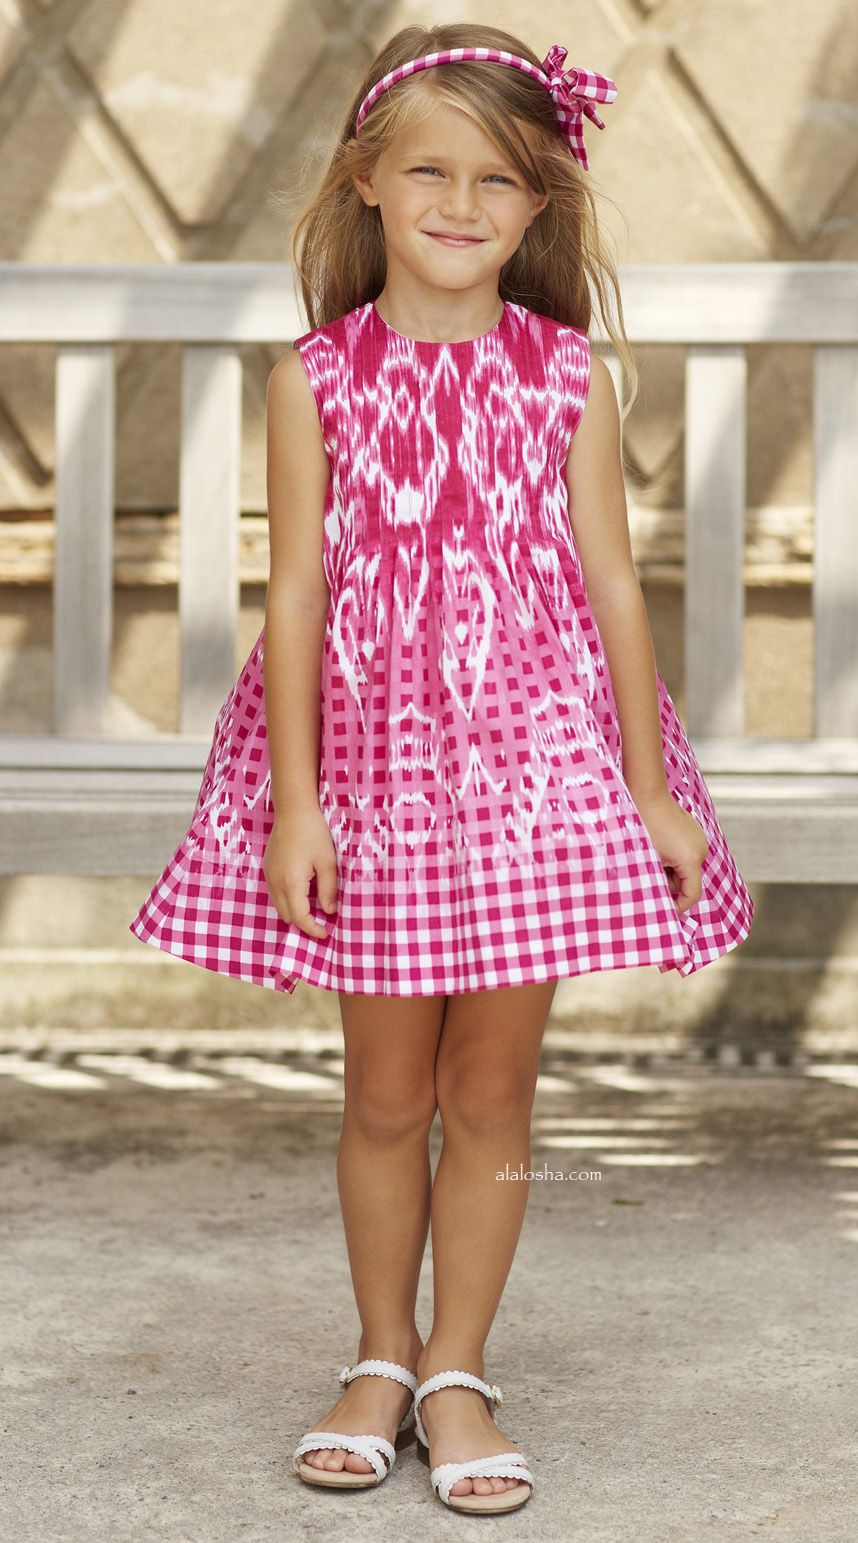 Alalosha Vogue Enfants Child Model Of The Day Lёlya: ALALOSHA: VOGUE ENFANTS: Here Comes The Sun:Meet Little